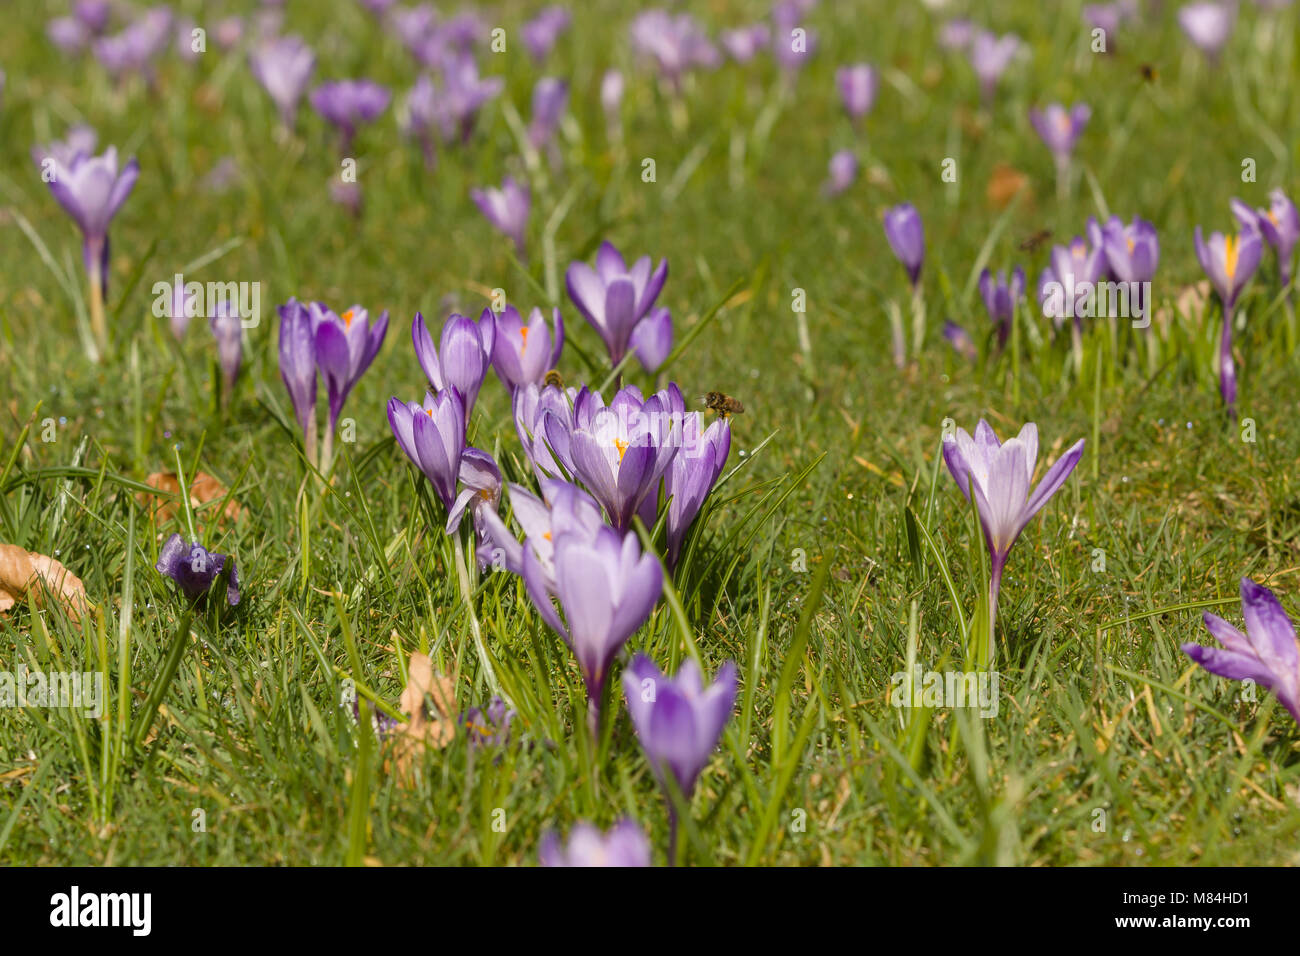 A mass of purple dutch crocus flowers blooming in early spring latin a mass of purple dutch crocus flowers blooming in early spring latin name crocus vernus mightylinksfo